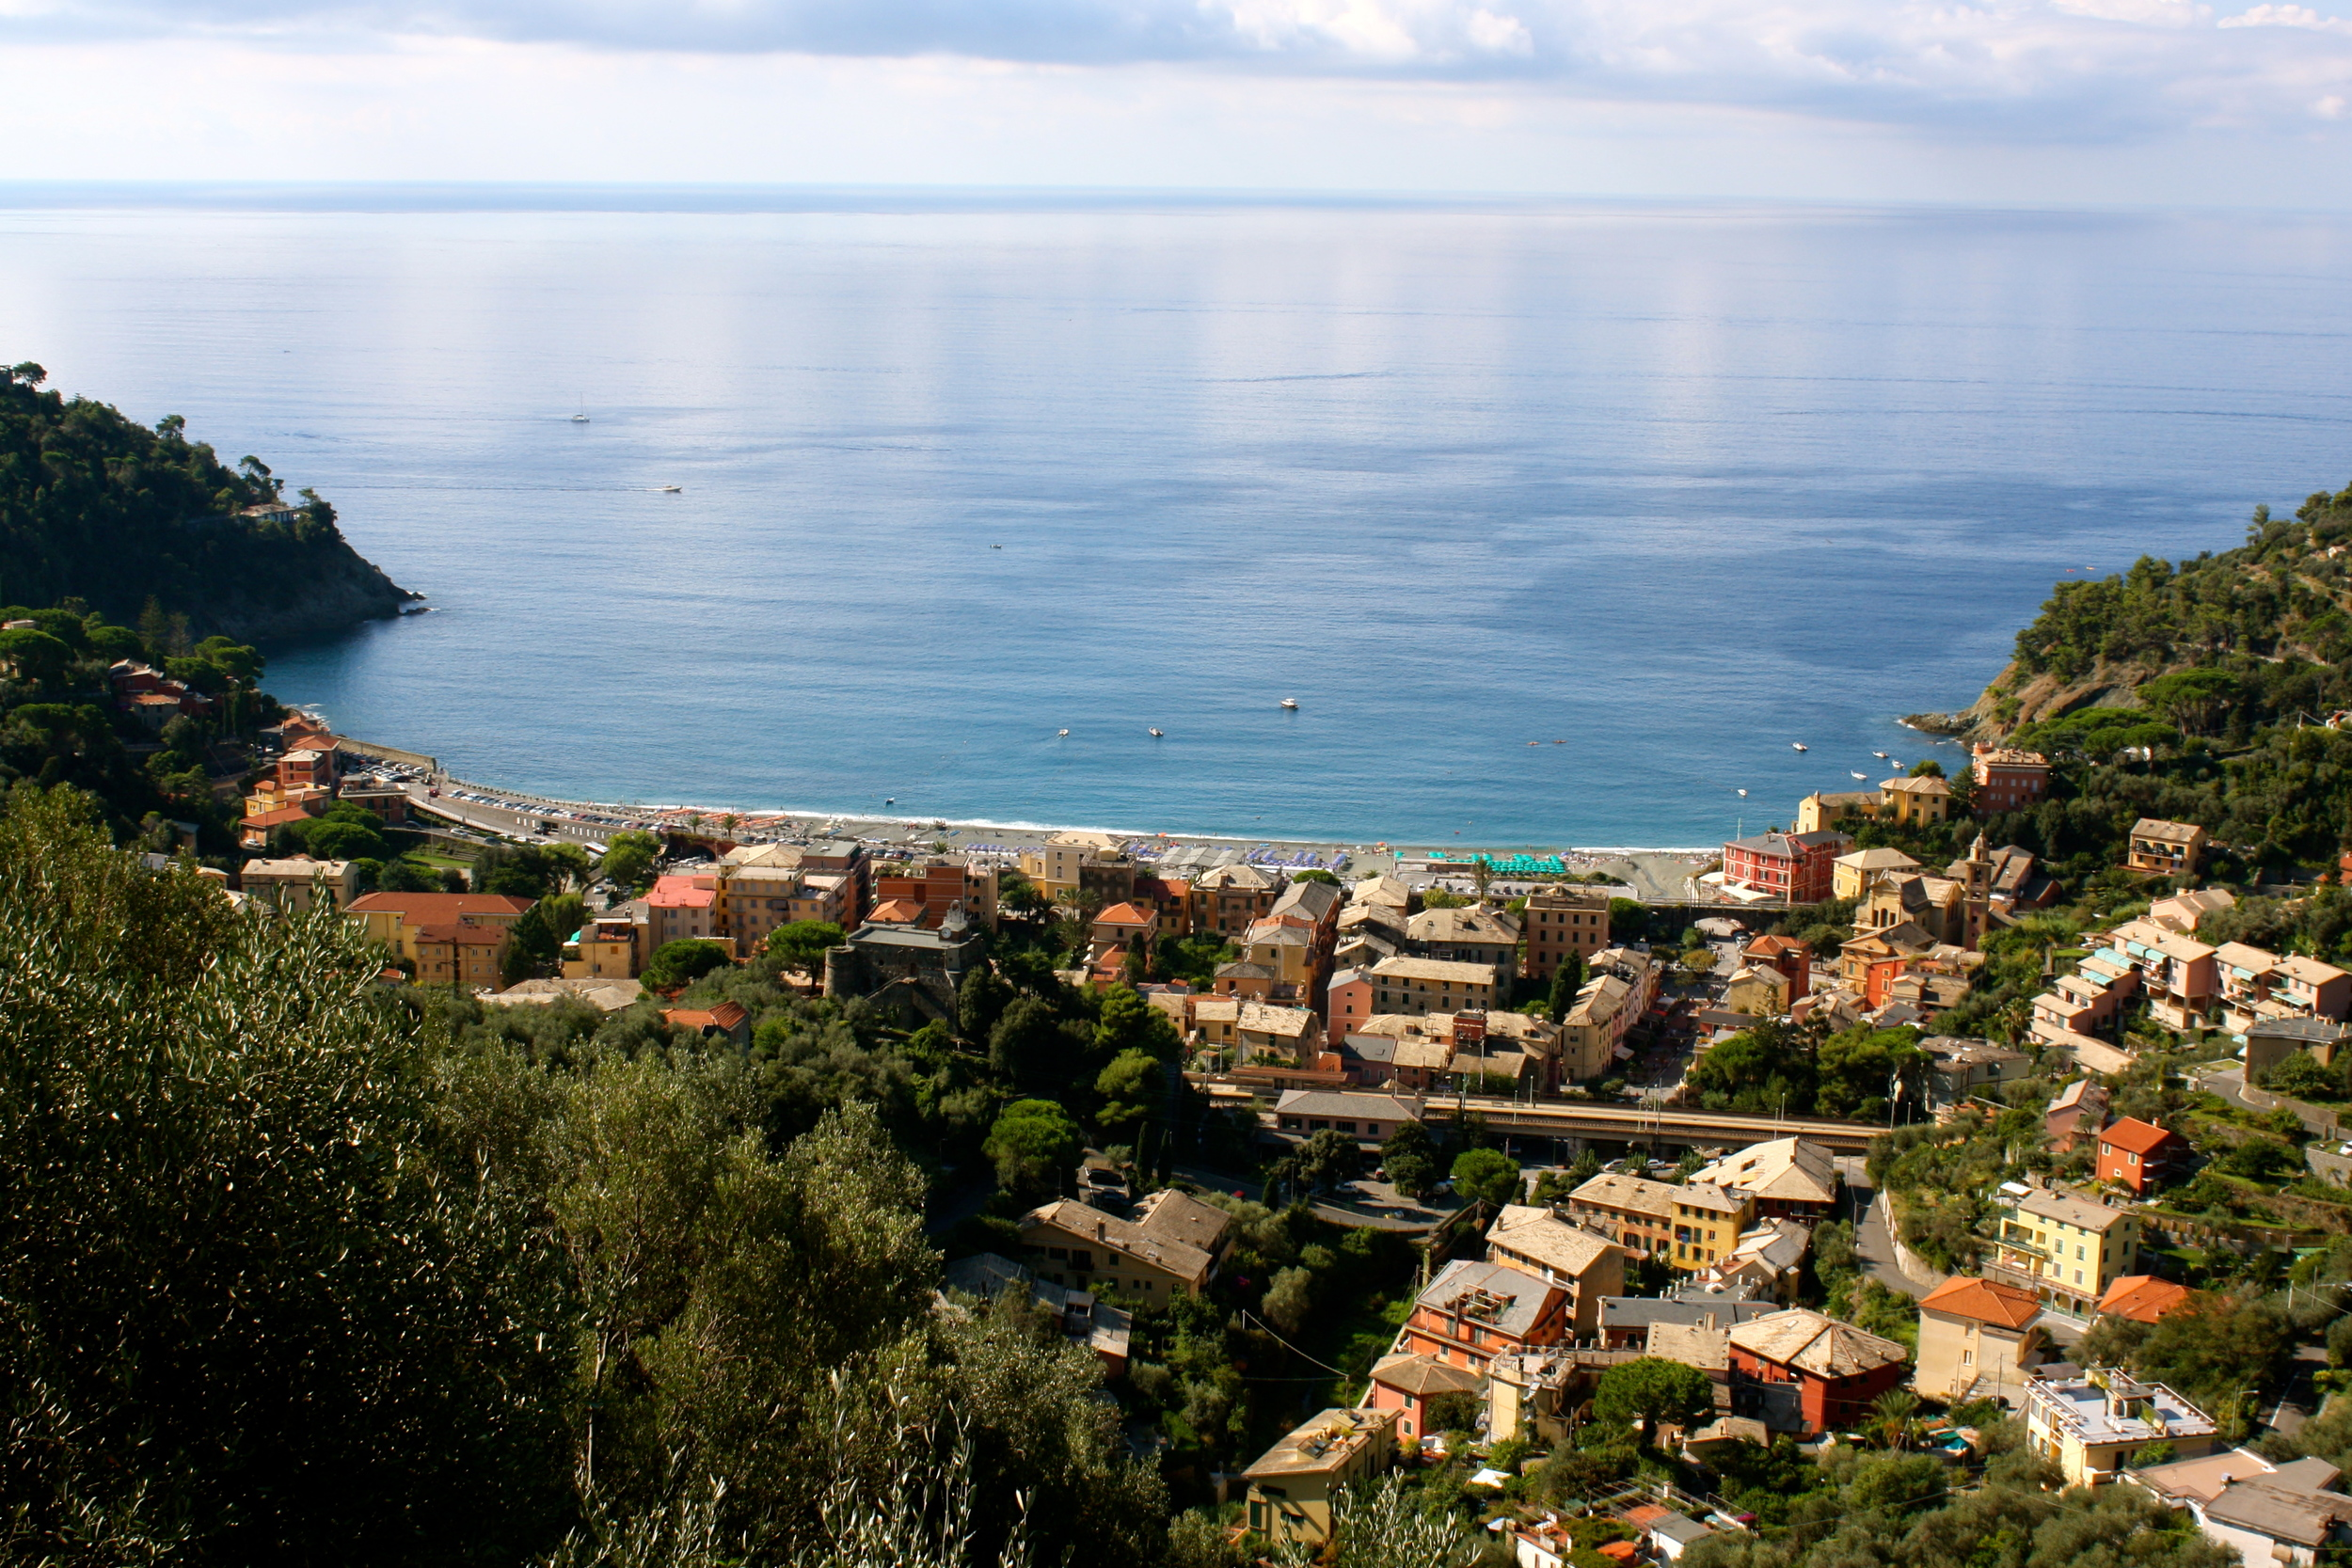 Bonassola, the town where we stayed while visiting the Cinque Terre. Our rooms were in the bottom middle of the picture.